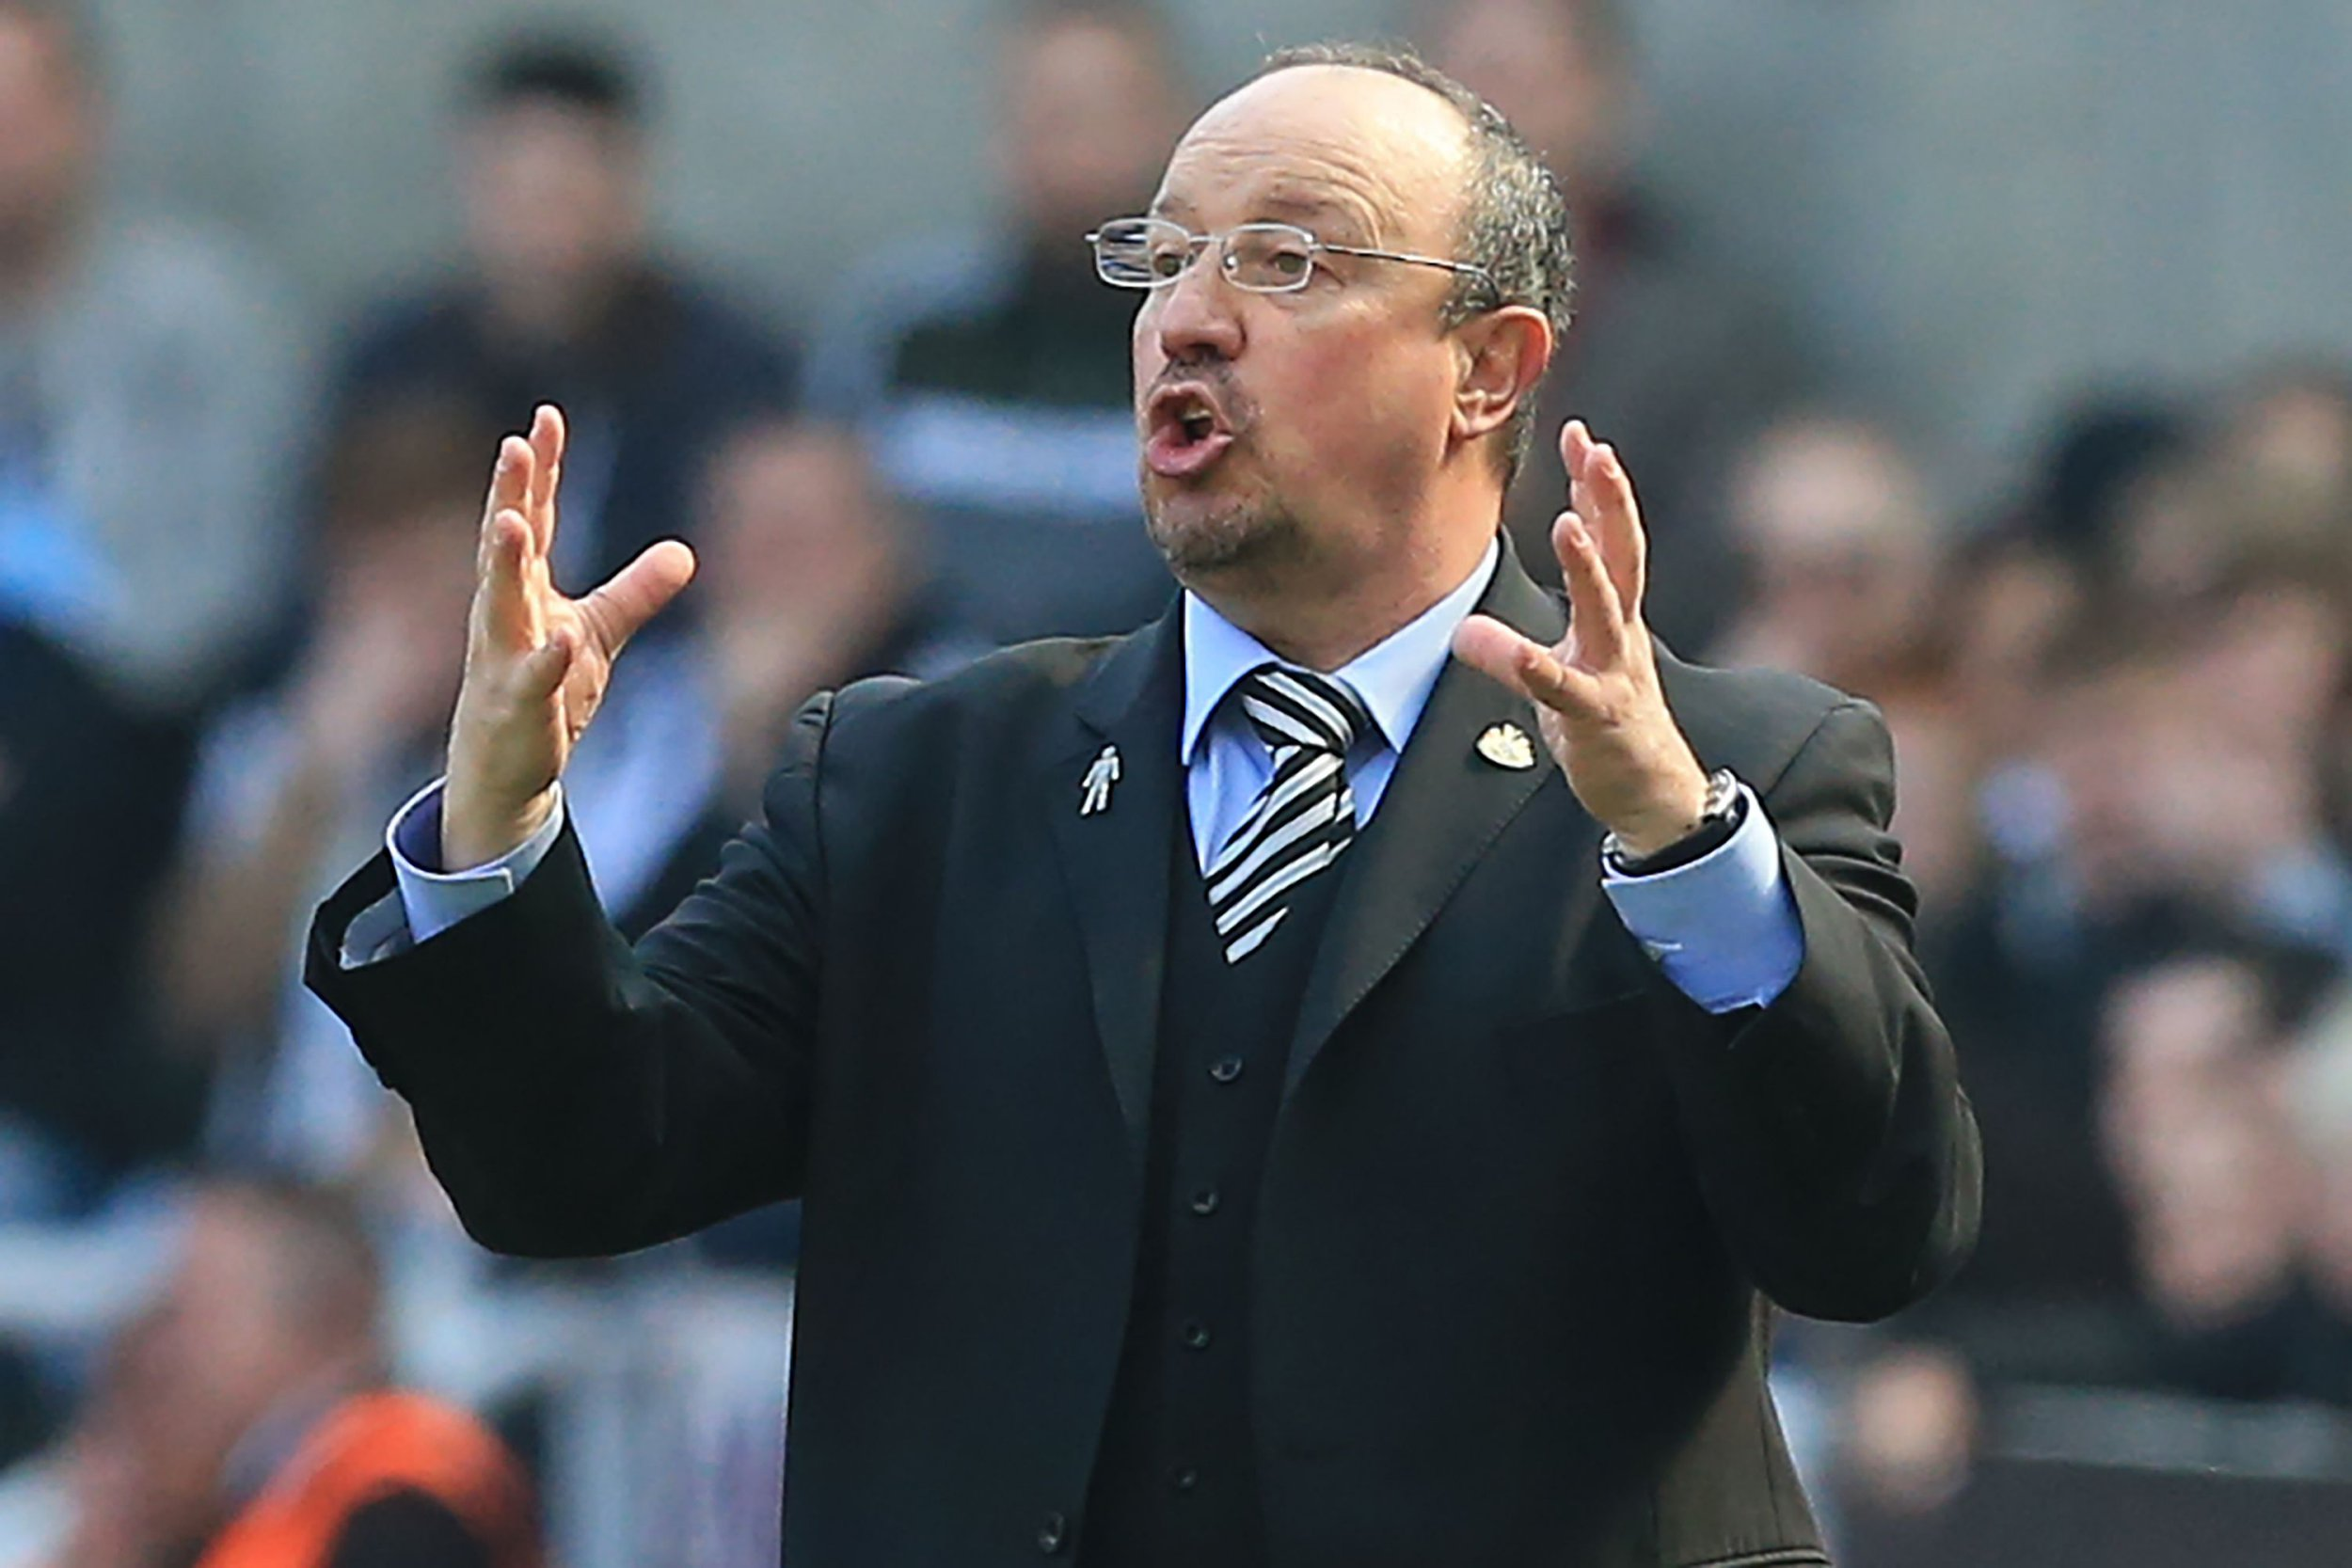 Newcastle United's Spanish manager Rafael Benitez gestures on the touchline during the English Premier League football match between Newcastle United and Arsenal at St James' Park in Newcastle-upon-Tyne, north east England on April 15, 2018. AFP PHOTO / Lindsey PARNABY / RESTRICTED TO EDITORIAL USE. No use with unauthorized audio, video, data, fixture lists, club/league logos or 'live' services. Online in-match use limited to 75 images, no video emulation. No use in betting, games or single club/league/player publications. / LINDSEY PARNABY/AFP/Getty Images